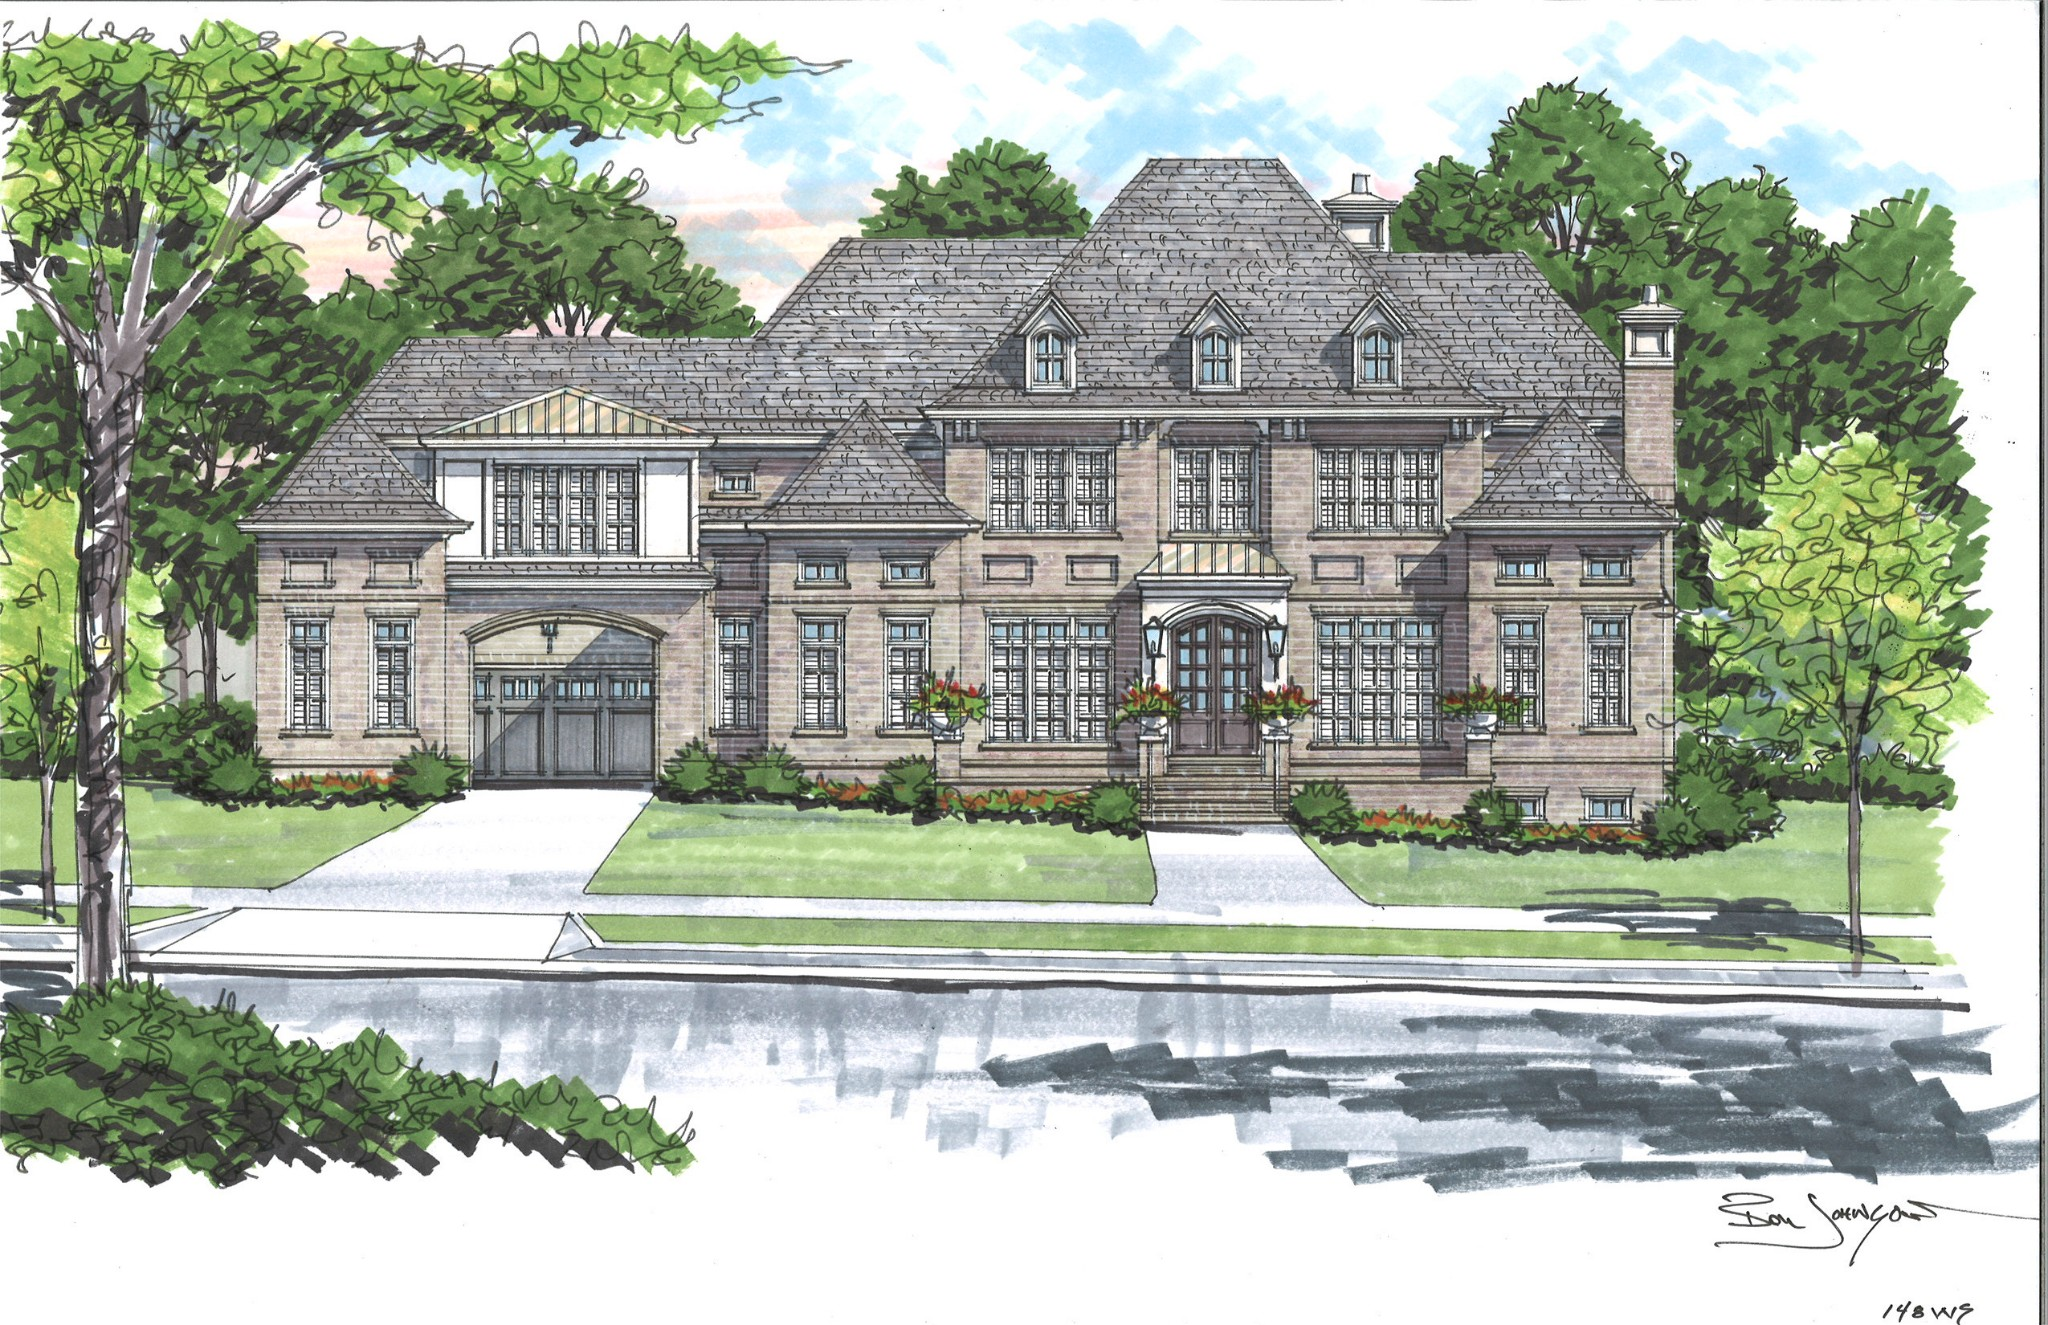 Beautiful Custom Home built by Barlow in Brentwood's most popular Luxury Homes Community - Witherspoon.  5 Bdrms/5Full Baths/2Half Baths.  2 story Fam. Rm. Offering great natural light. Grand classic architecture with Porte cochere to 4 car gar. Oversized rear porch w/outdoor Kit. & fplc. perfect for future pool. Master and Guest Suites on main.